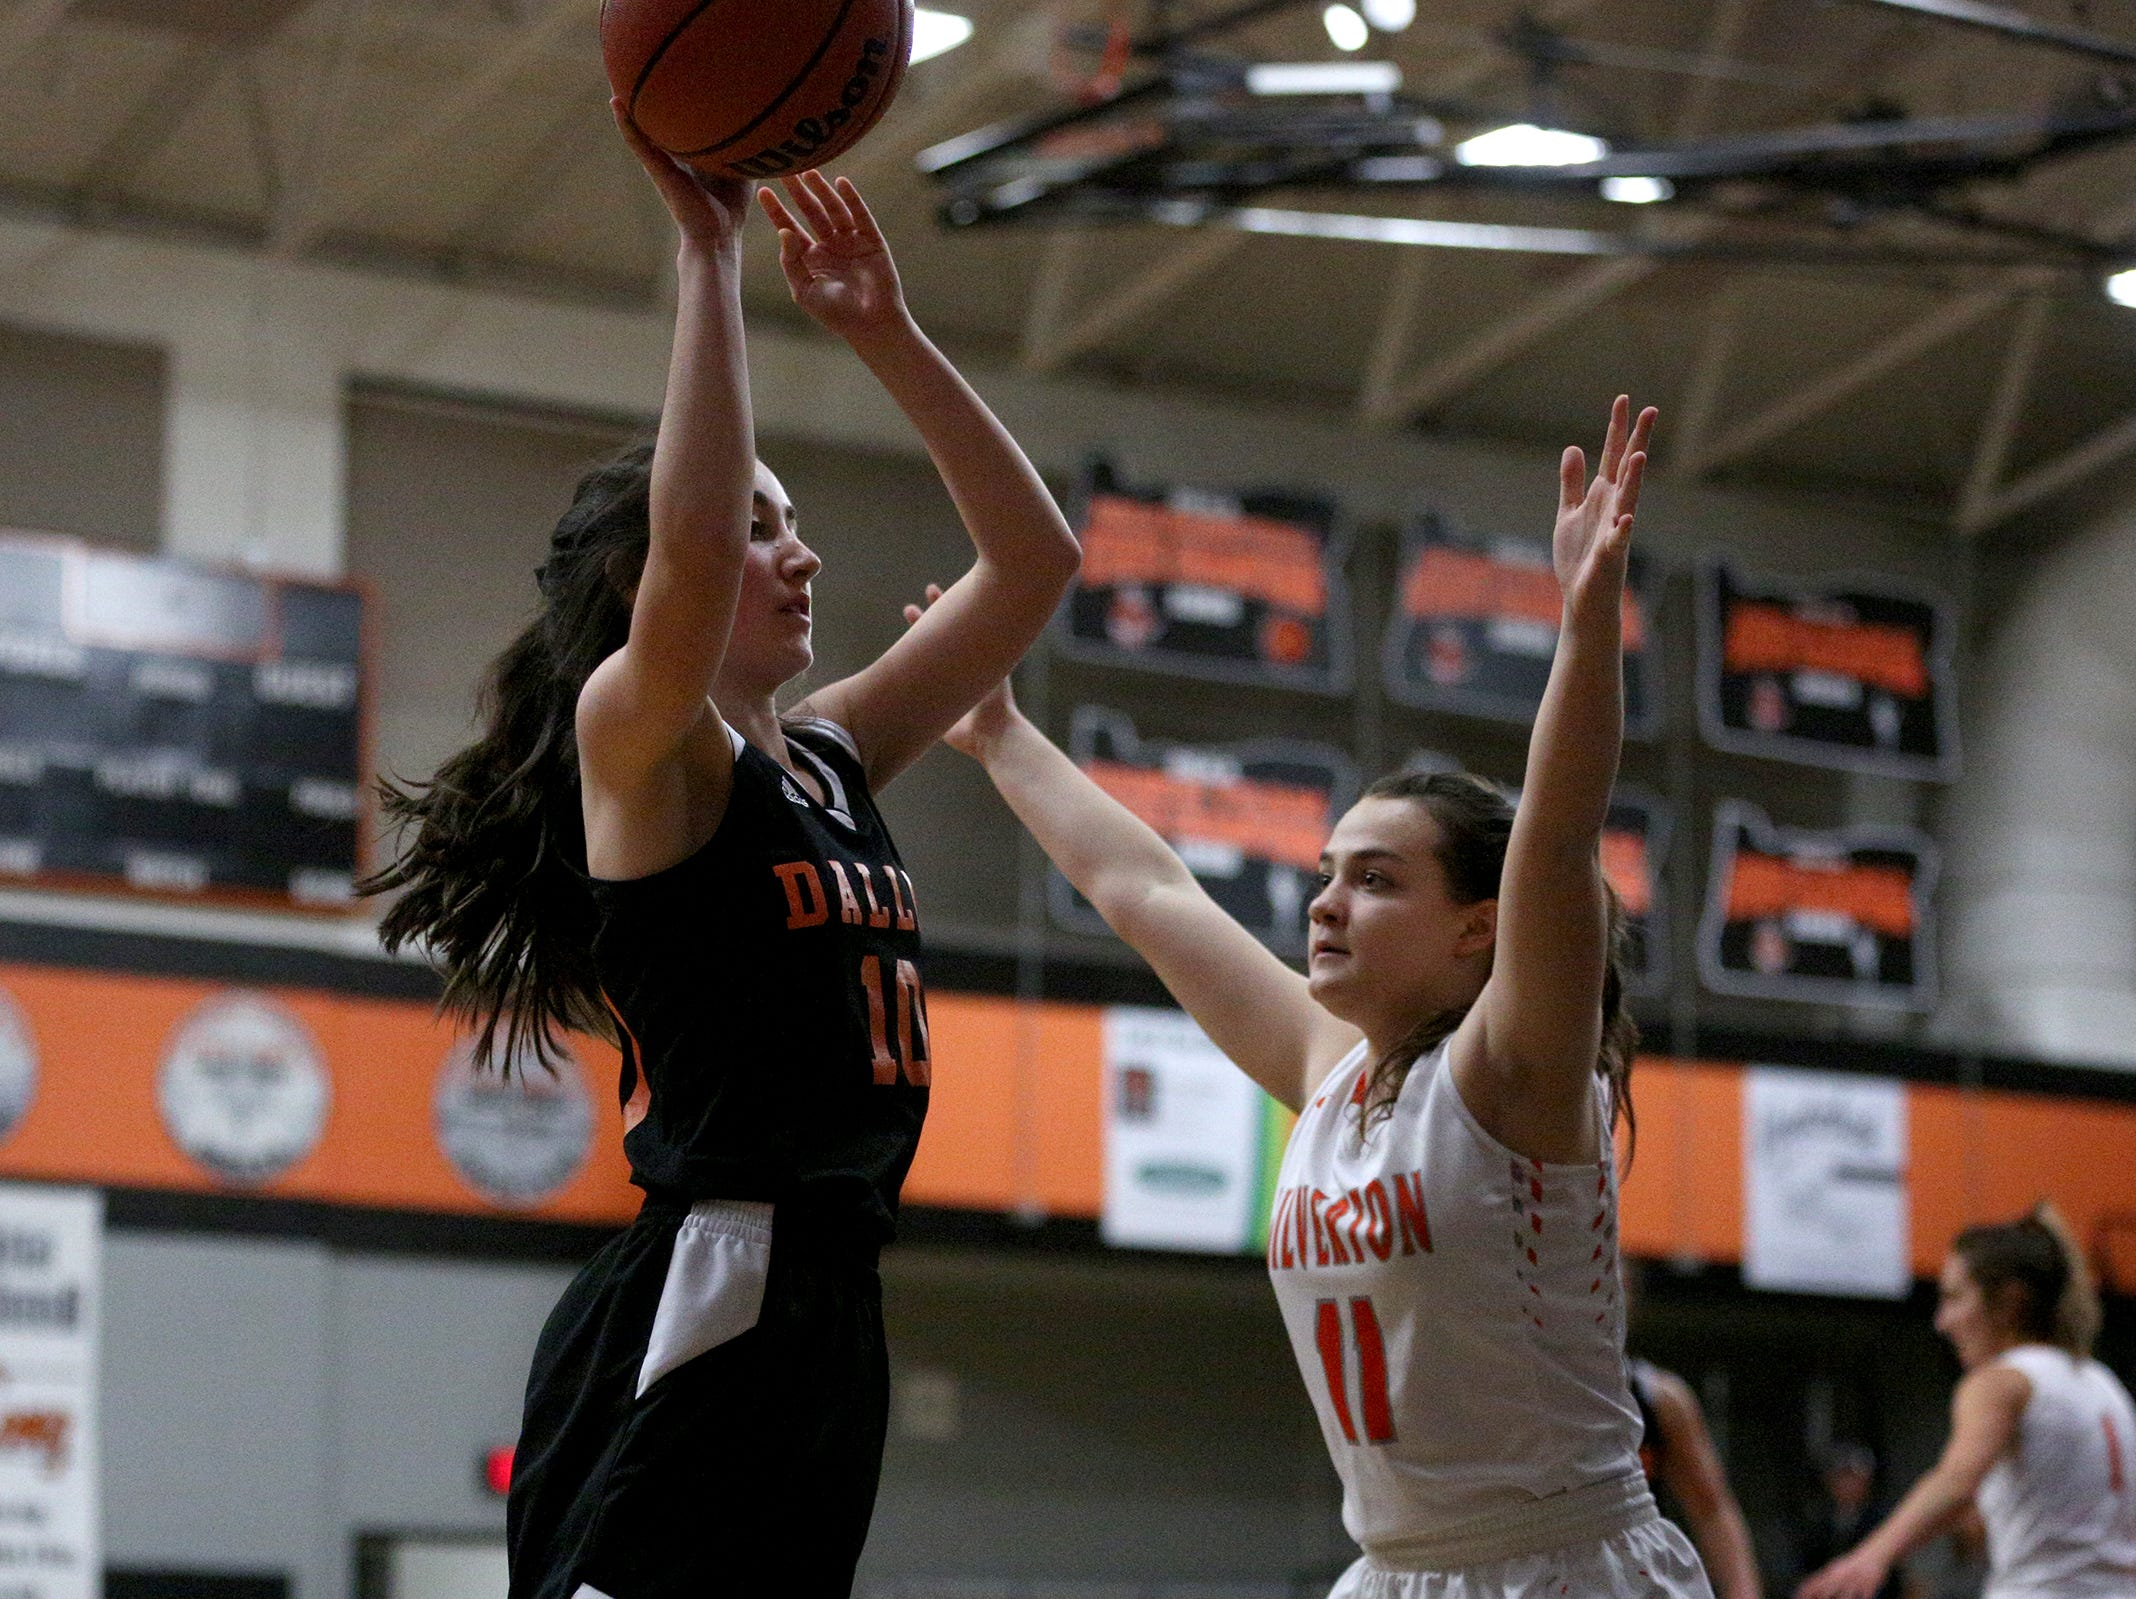 Silverton's Lilly Horner (11) works to block Dallas' Madelyn Loughary (20) during the Dallas High School vs. Silverton High School girls basketball game in Silverton on Tuesday, Dec. 8, 2019.